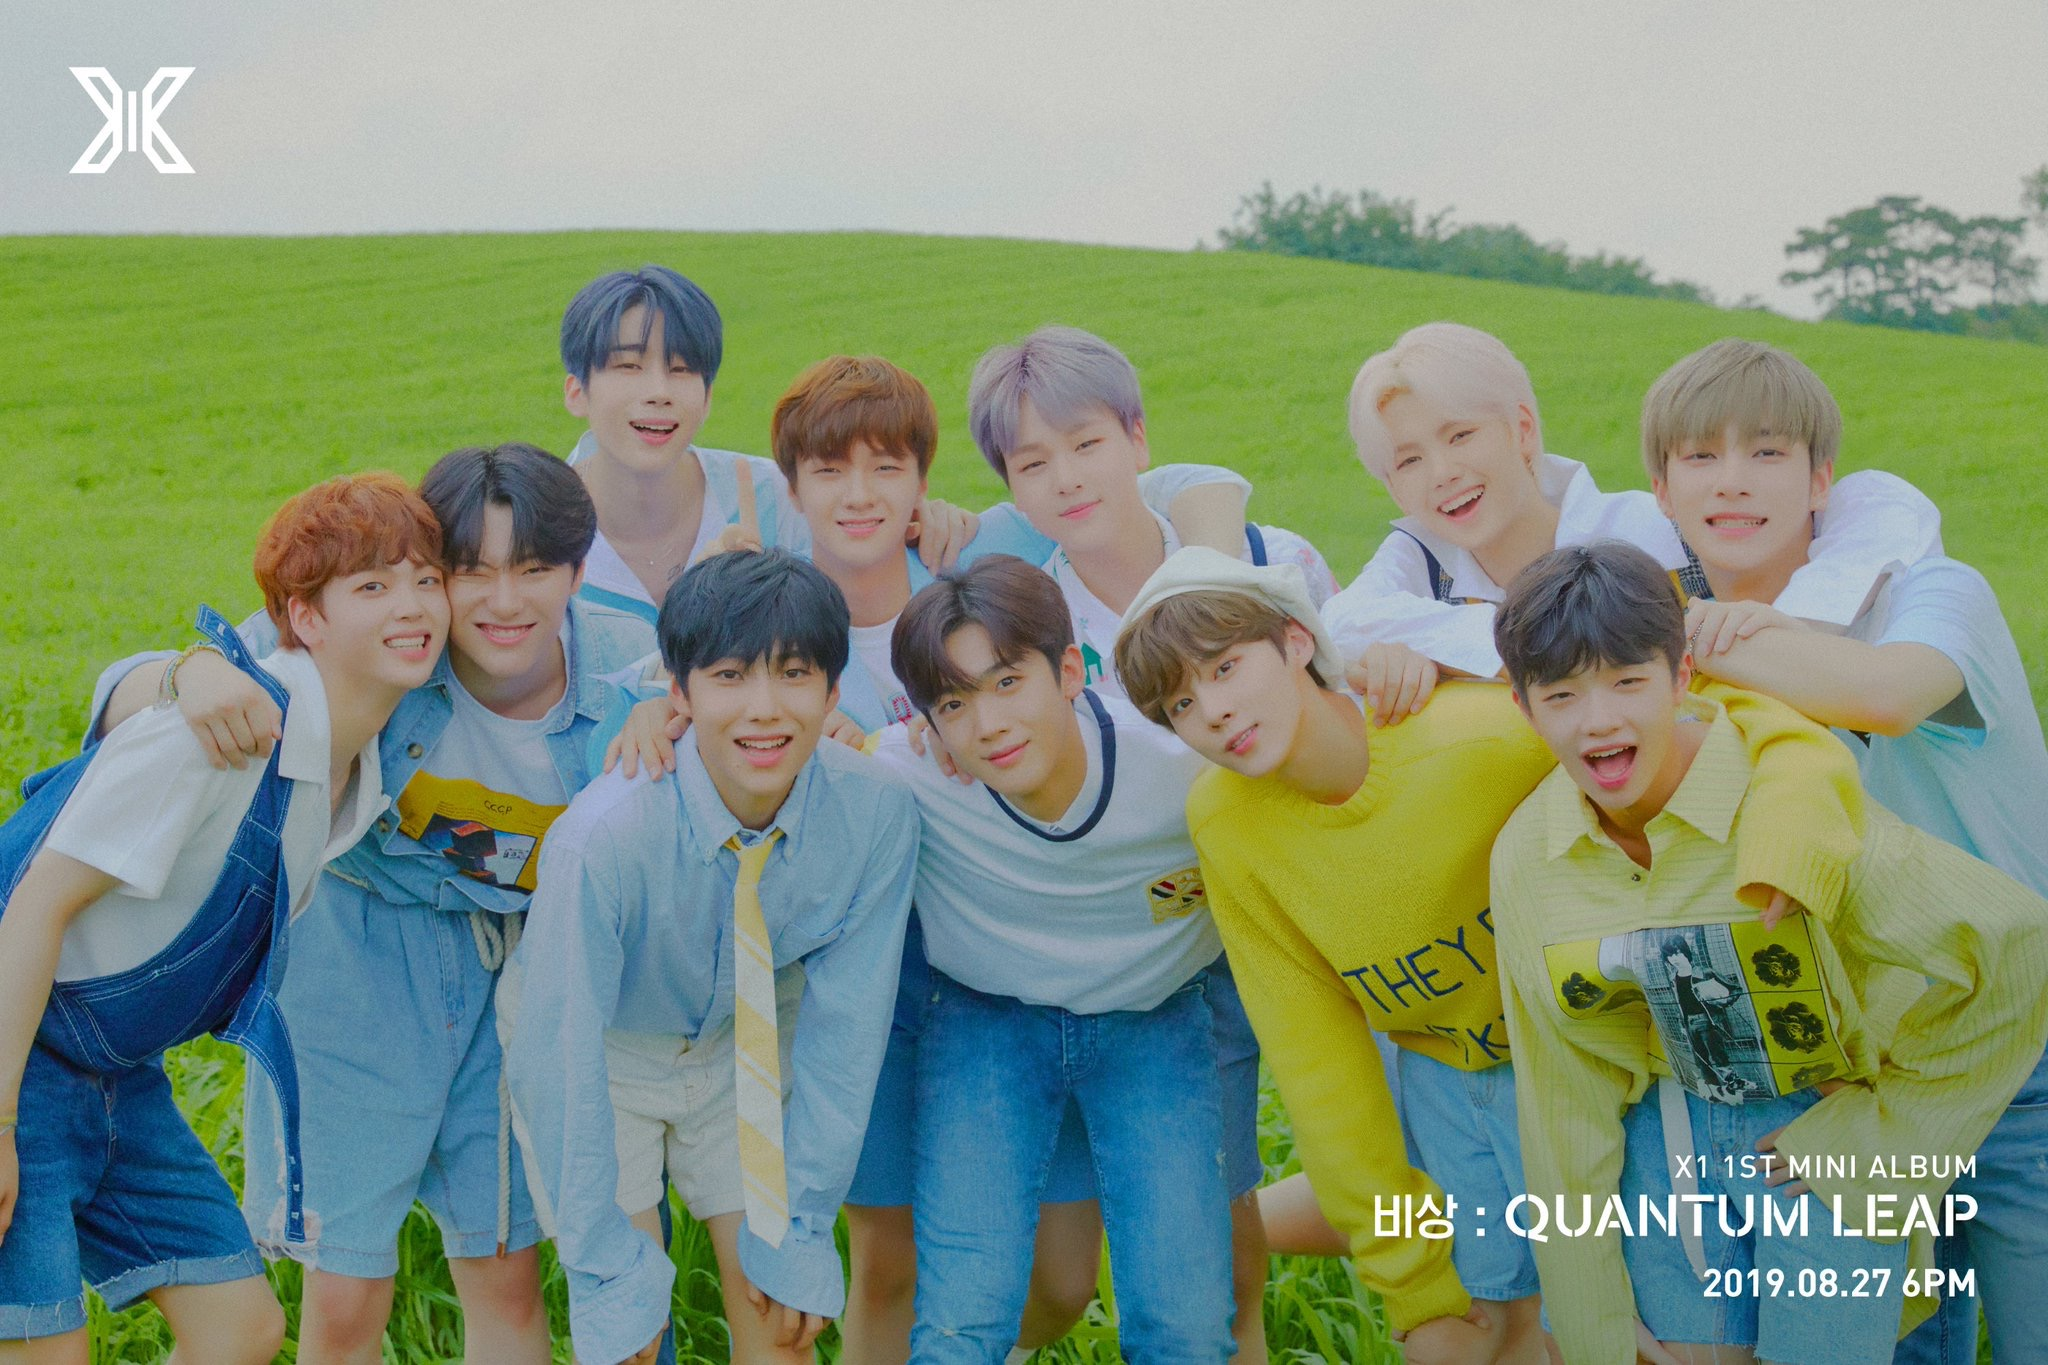 List Of Idol Survival Shows Produce 101 Boys24 Idol School Etc Channel K Nature will be making a comeback with their 3rd single album on june 17! list of idol survival shows produce